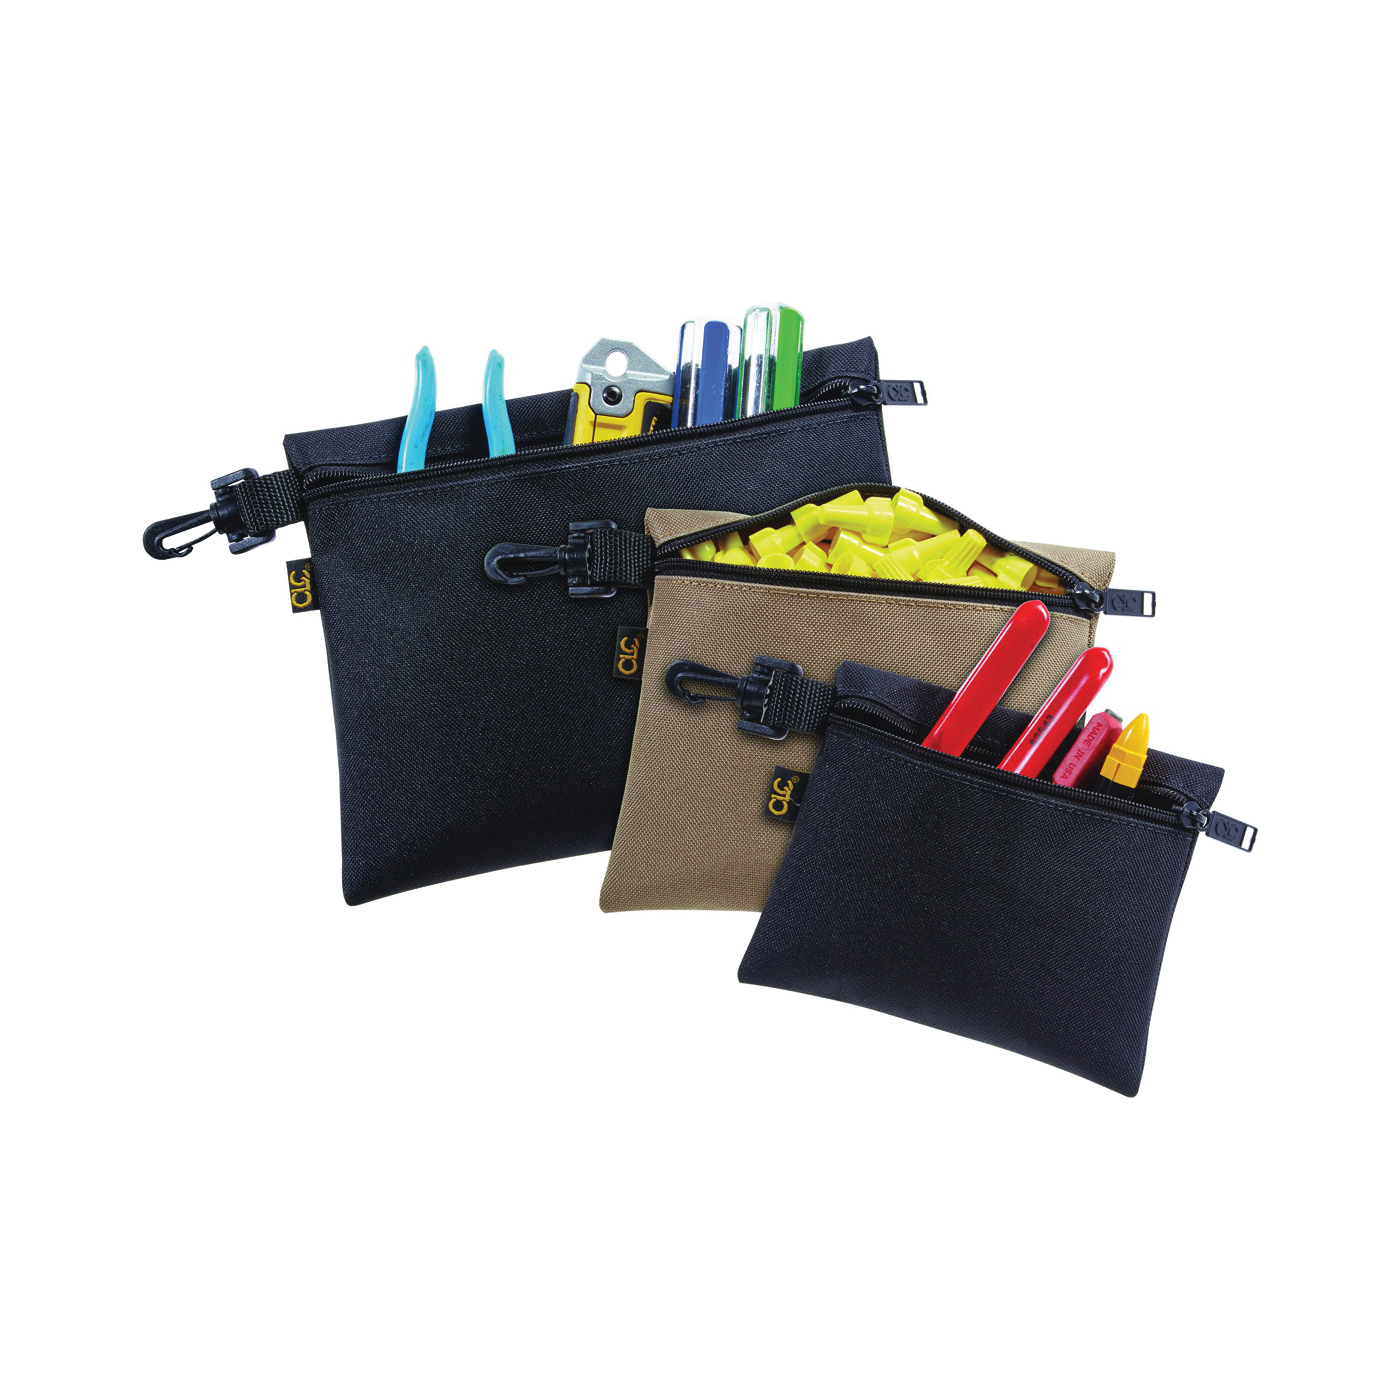 Picture of CLC Tool Works 1100 Zippered Bag, 1 -Pocket, Polyester, Black/Khaki